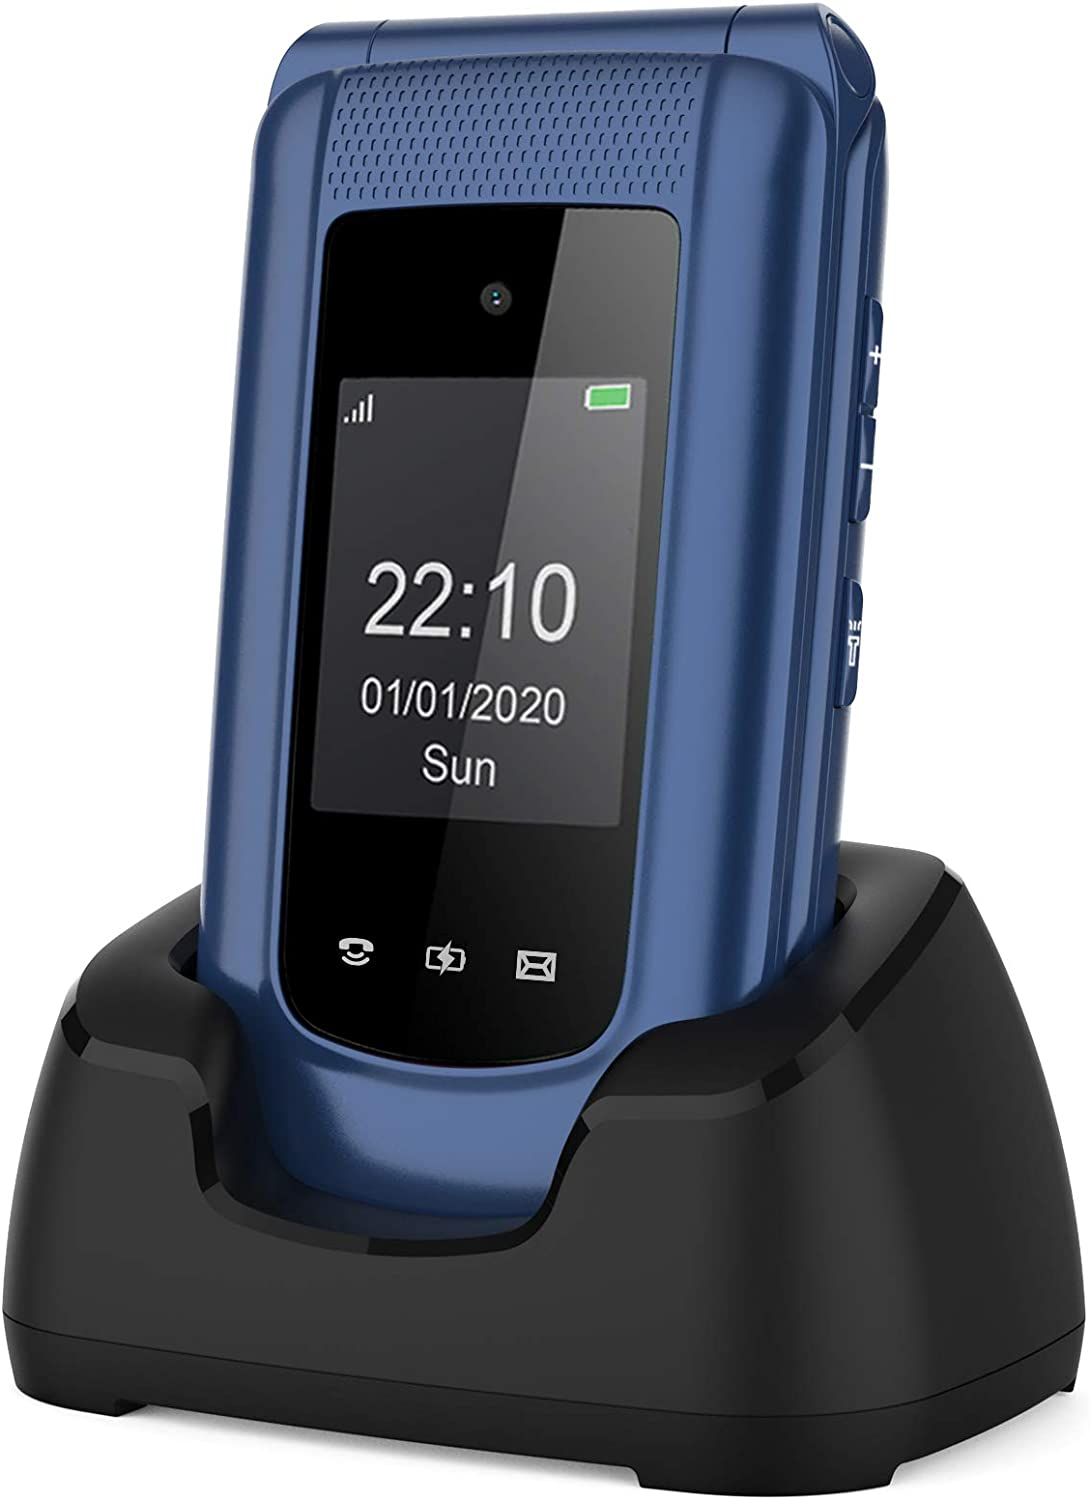 Uleway 3G Unlocked Flip Phone for Seniors Big Button Large Icon T Mobile Flip Phone SOS Button Basic Cell Phone with Charging Cradle for Senior&Kids (Blue)(Compatible with T Mobile, AT&T Network)